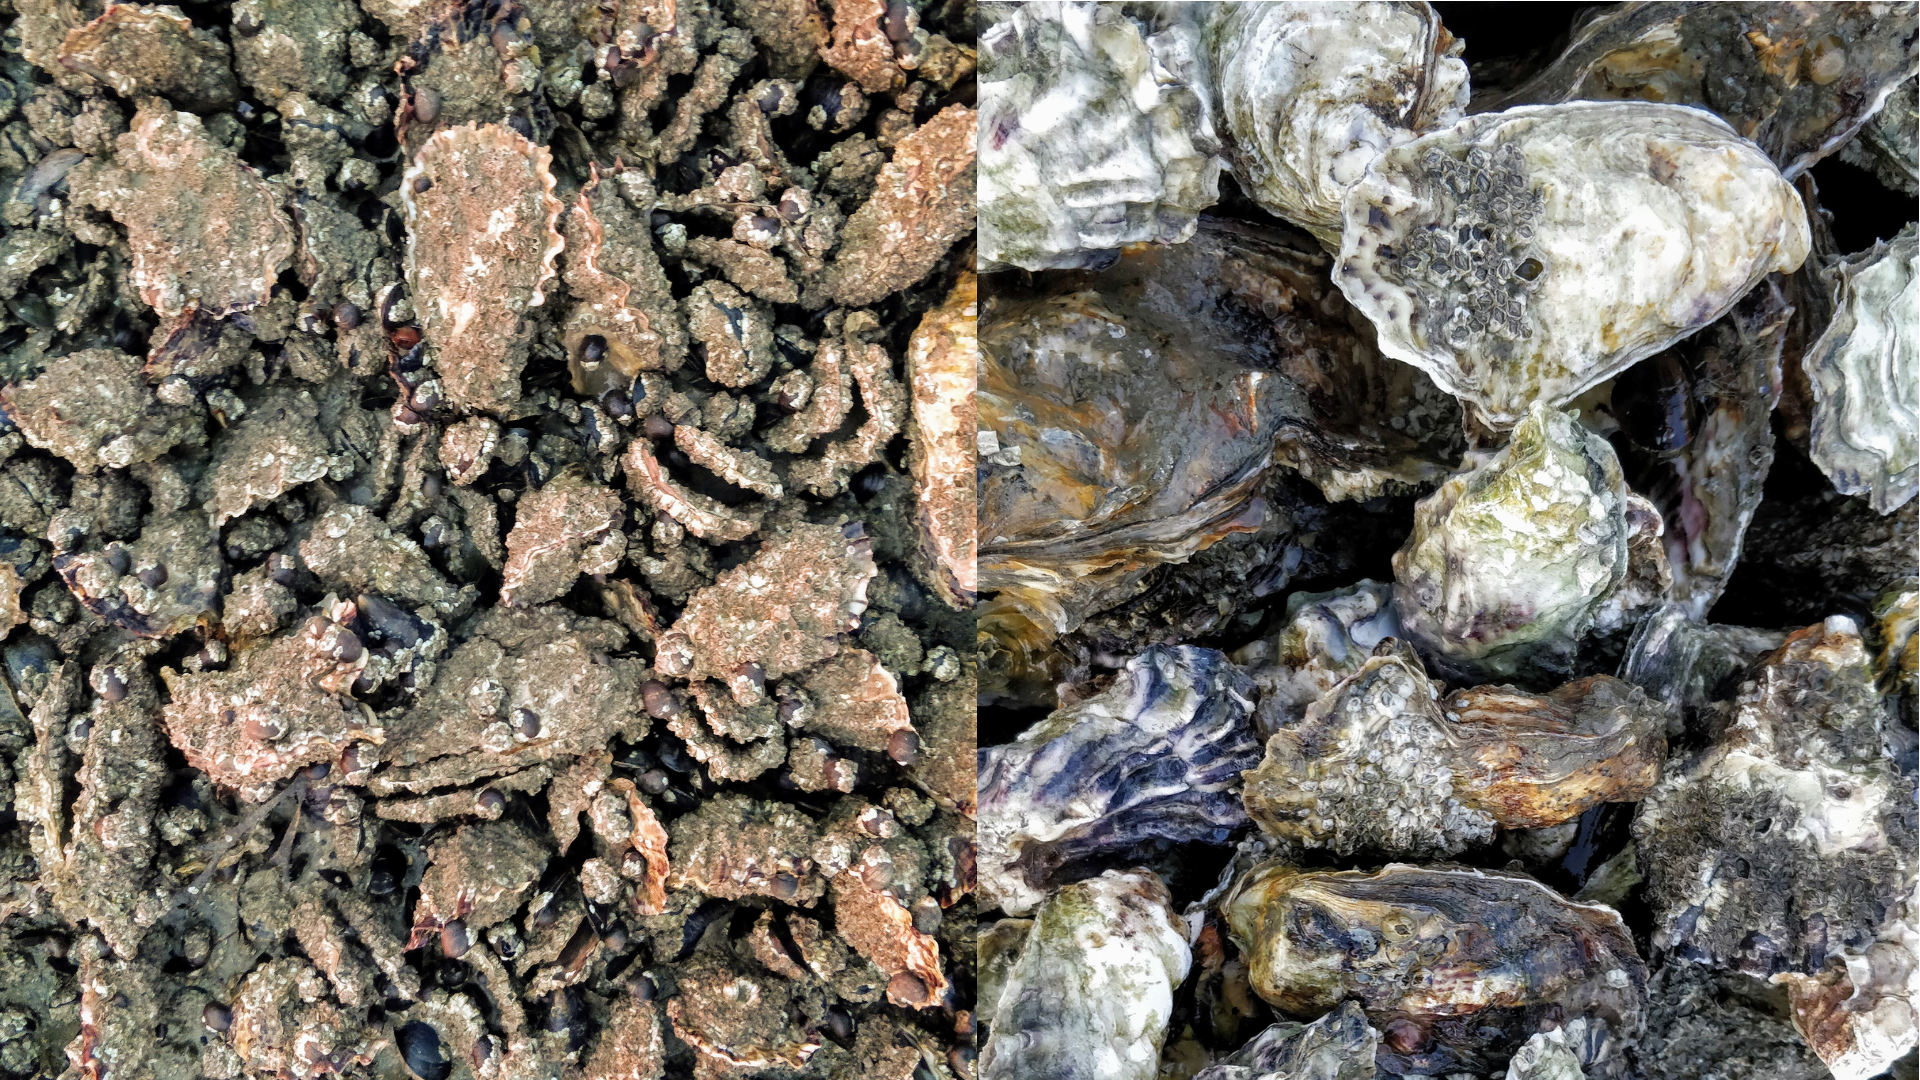 Oysters before (left) and after (right) being washed clean of their coat of barnacles.